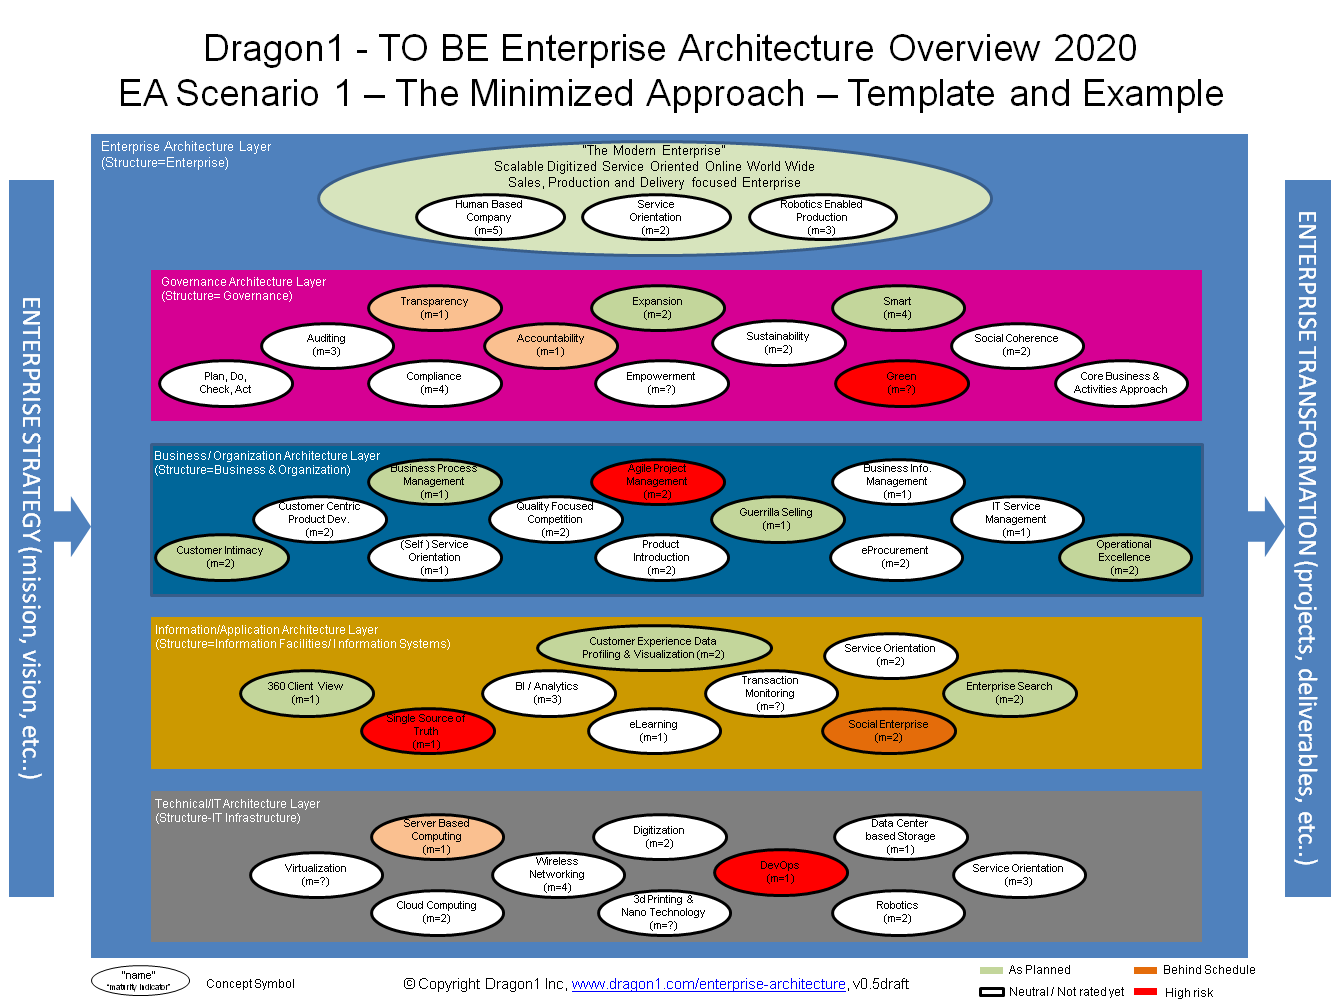 Enterprise Architecture Overview - Example and Template